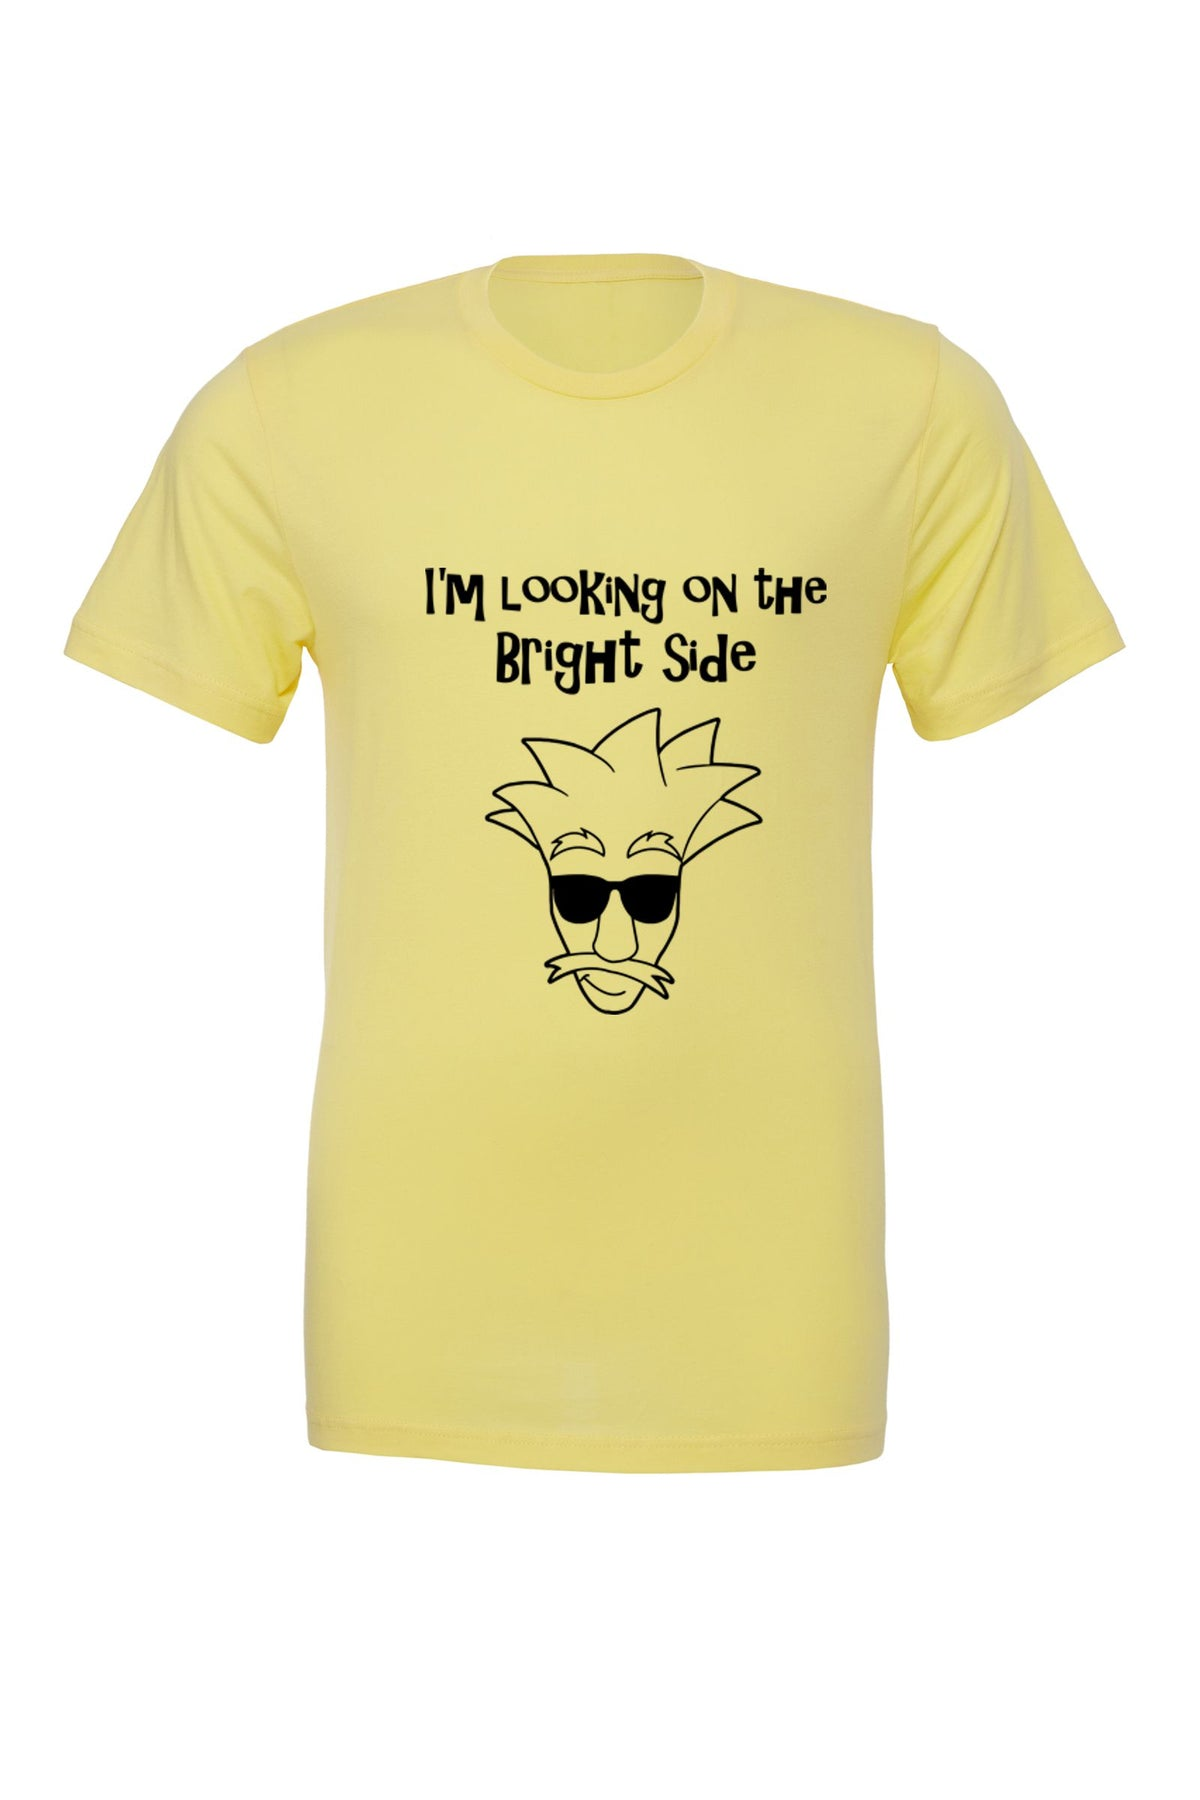 Looking on the Bright Side of Life - Unisex Tee